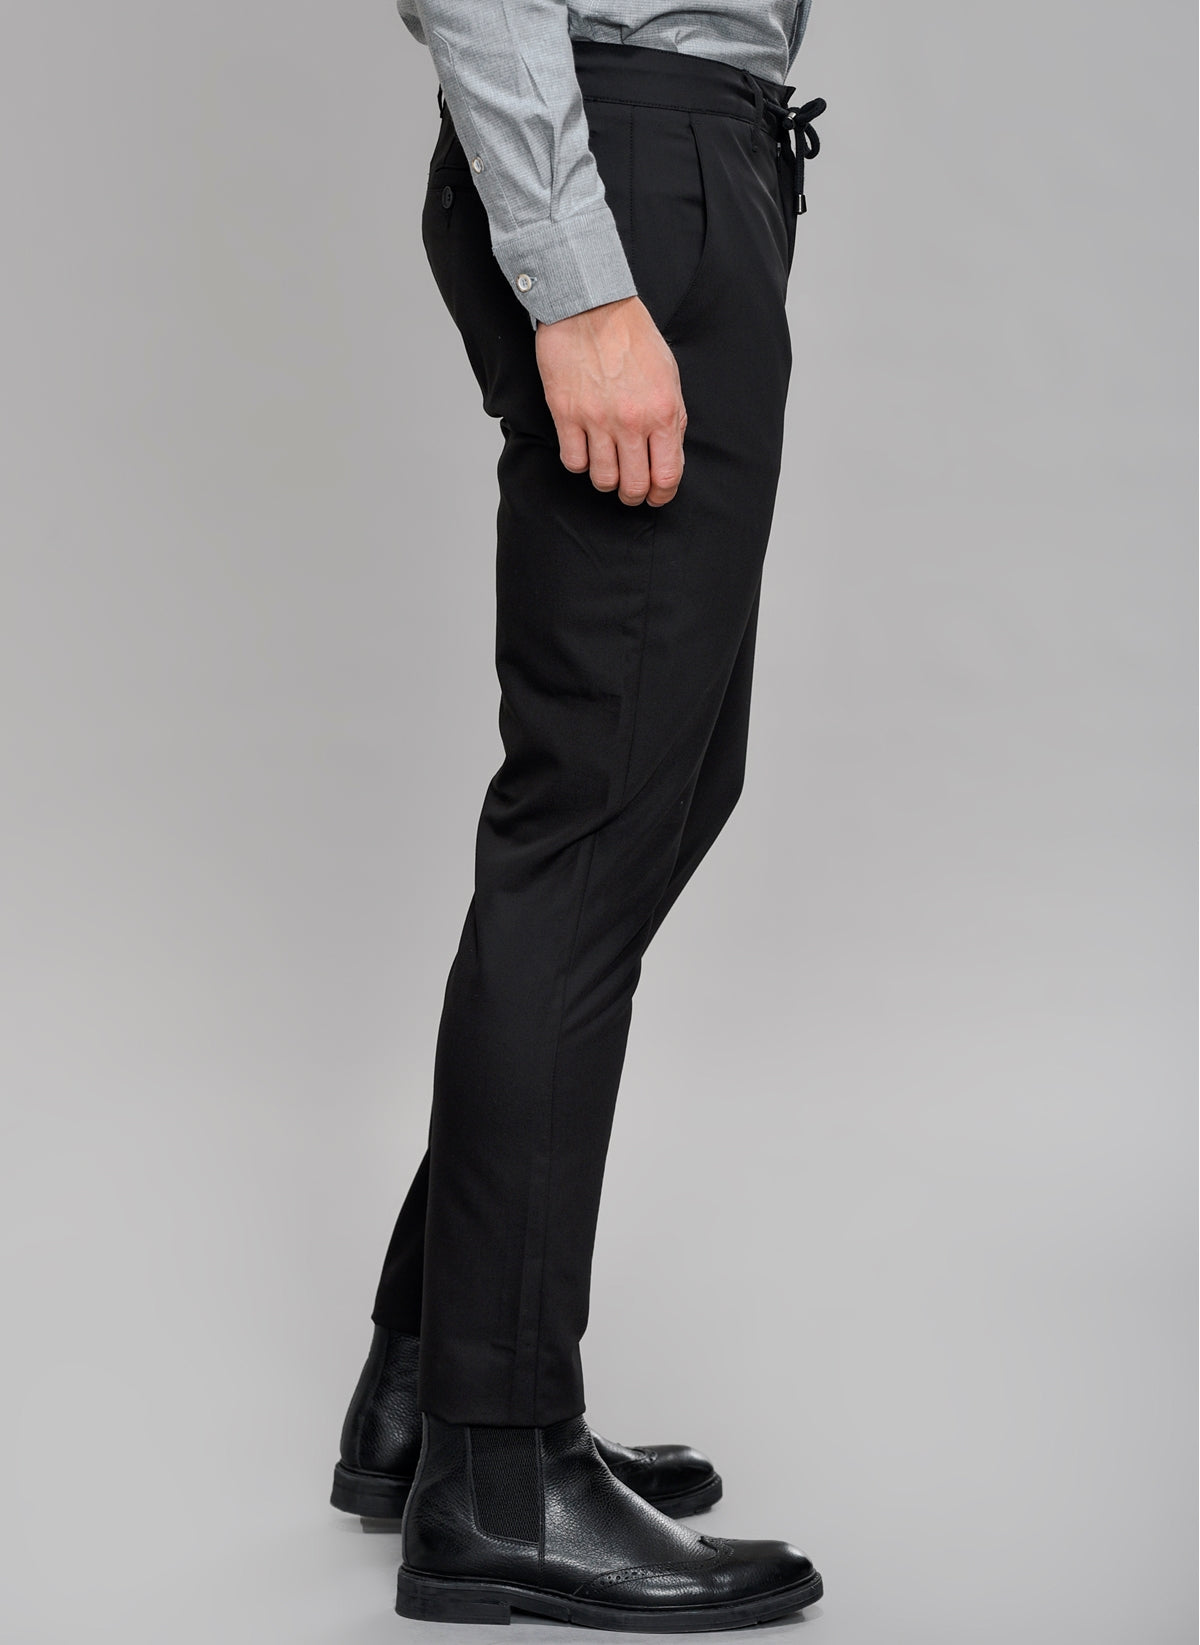 Dress Pants with Removable Drawstrings